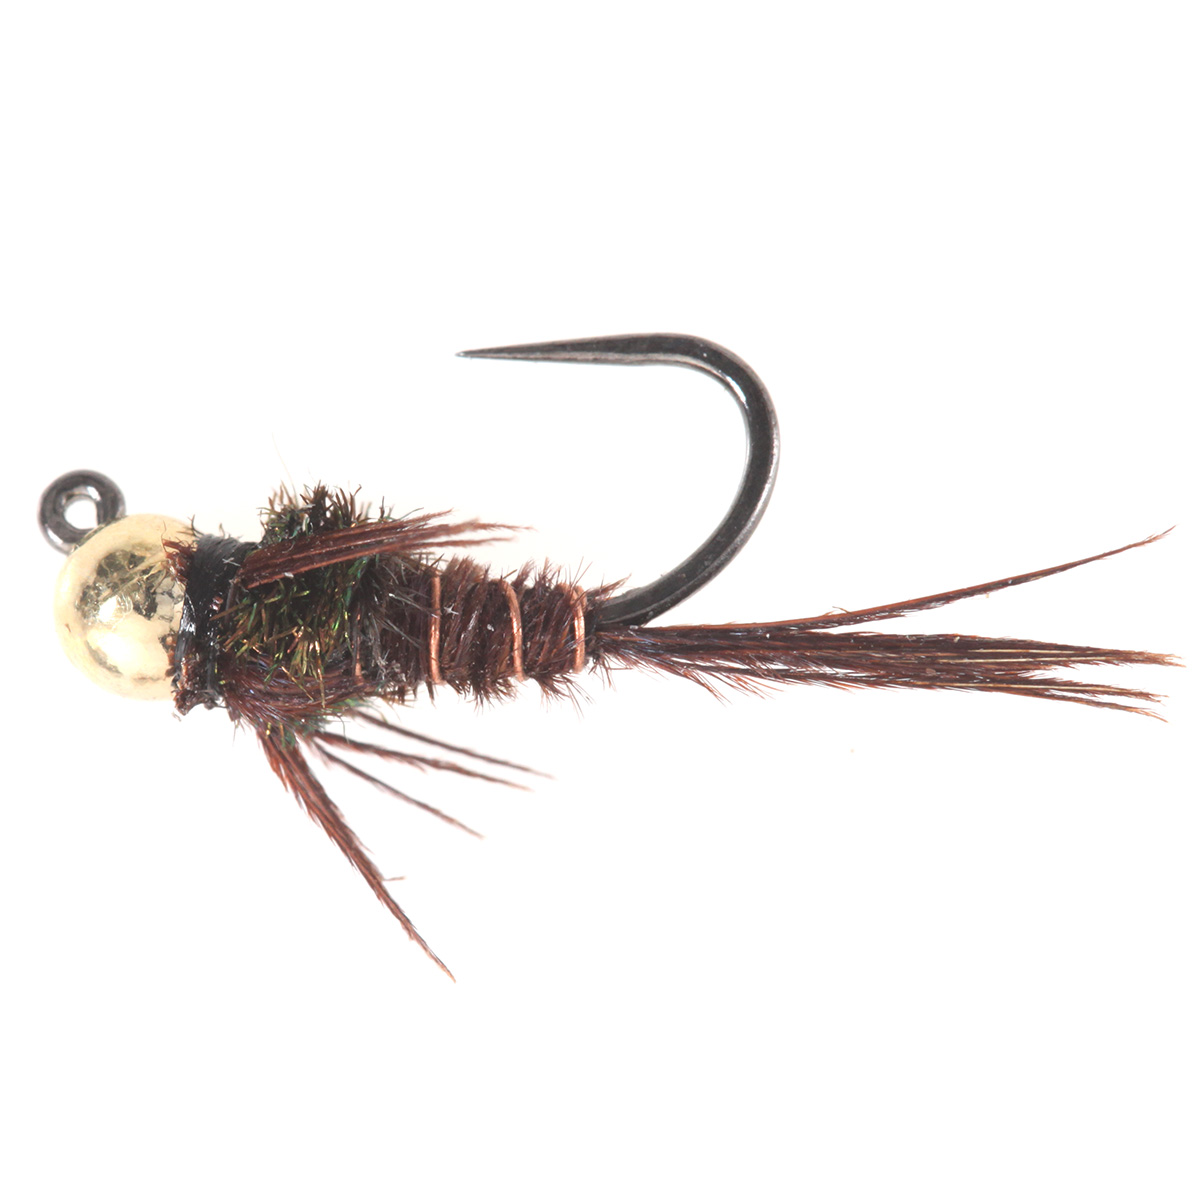 Tungsten BH Pheasant Tail Natural